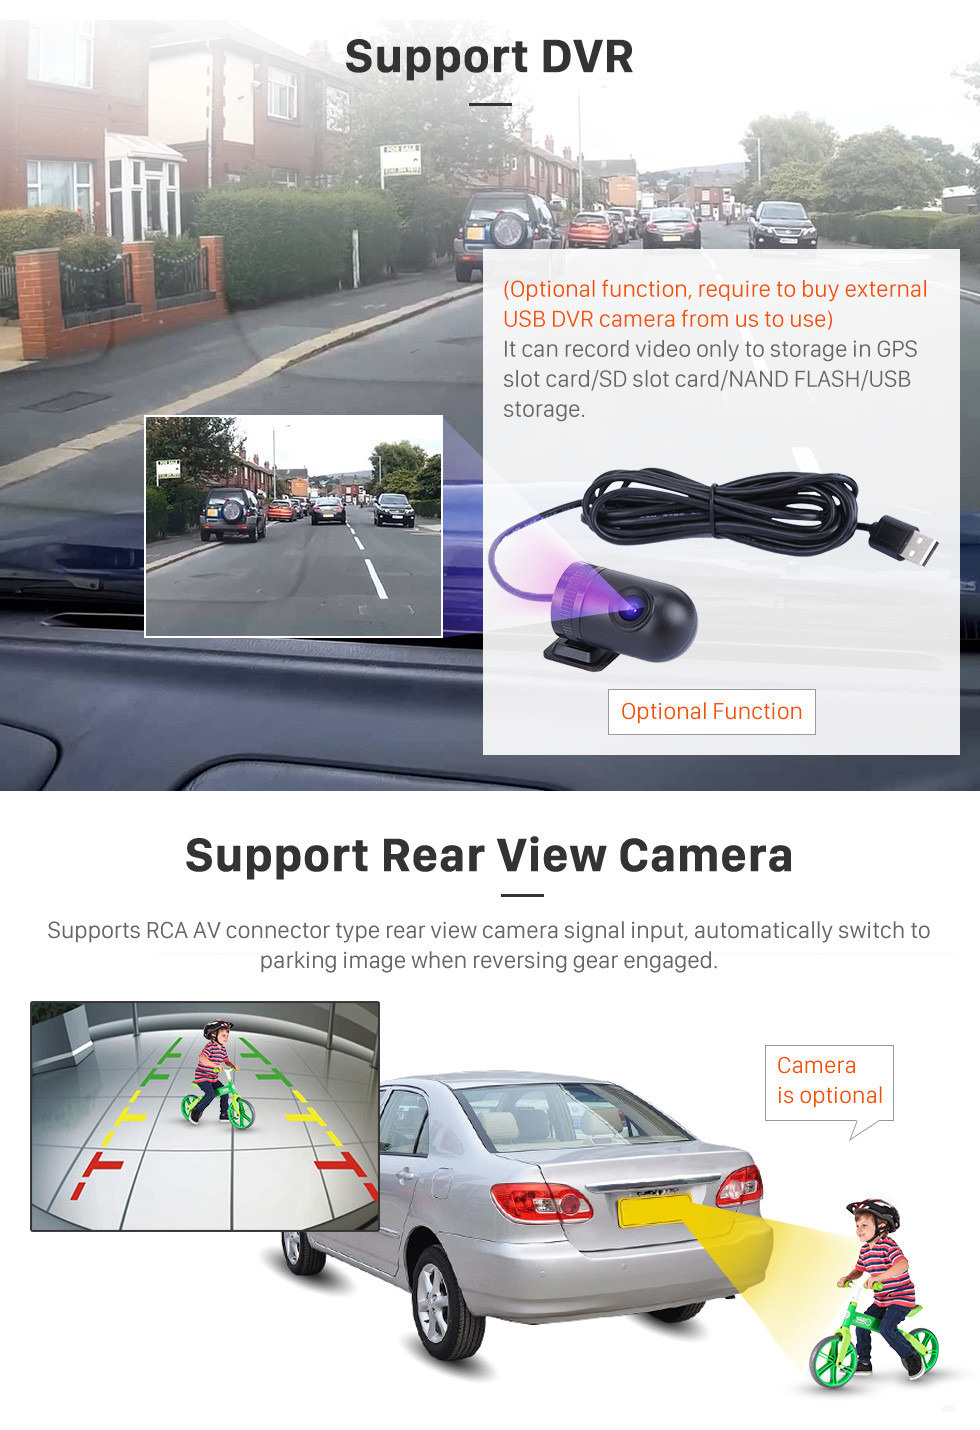 Seicane 9 inch HD Touchscreen Android 10.0 GPS Navigation System Bluetooth WIFI For 2014 2015 Hyundai I20 Support USB Rear View Camera DVR OBD II 1080P Video TPMS